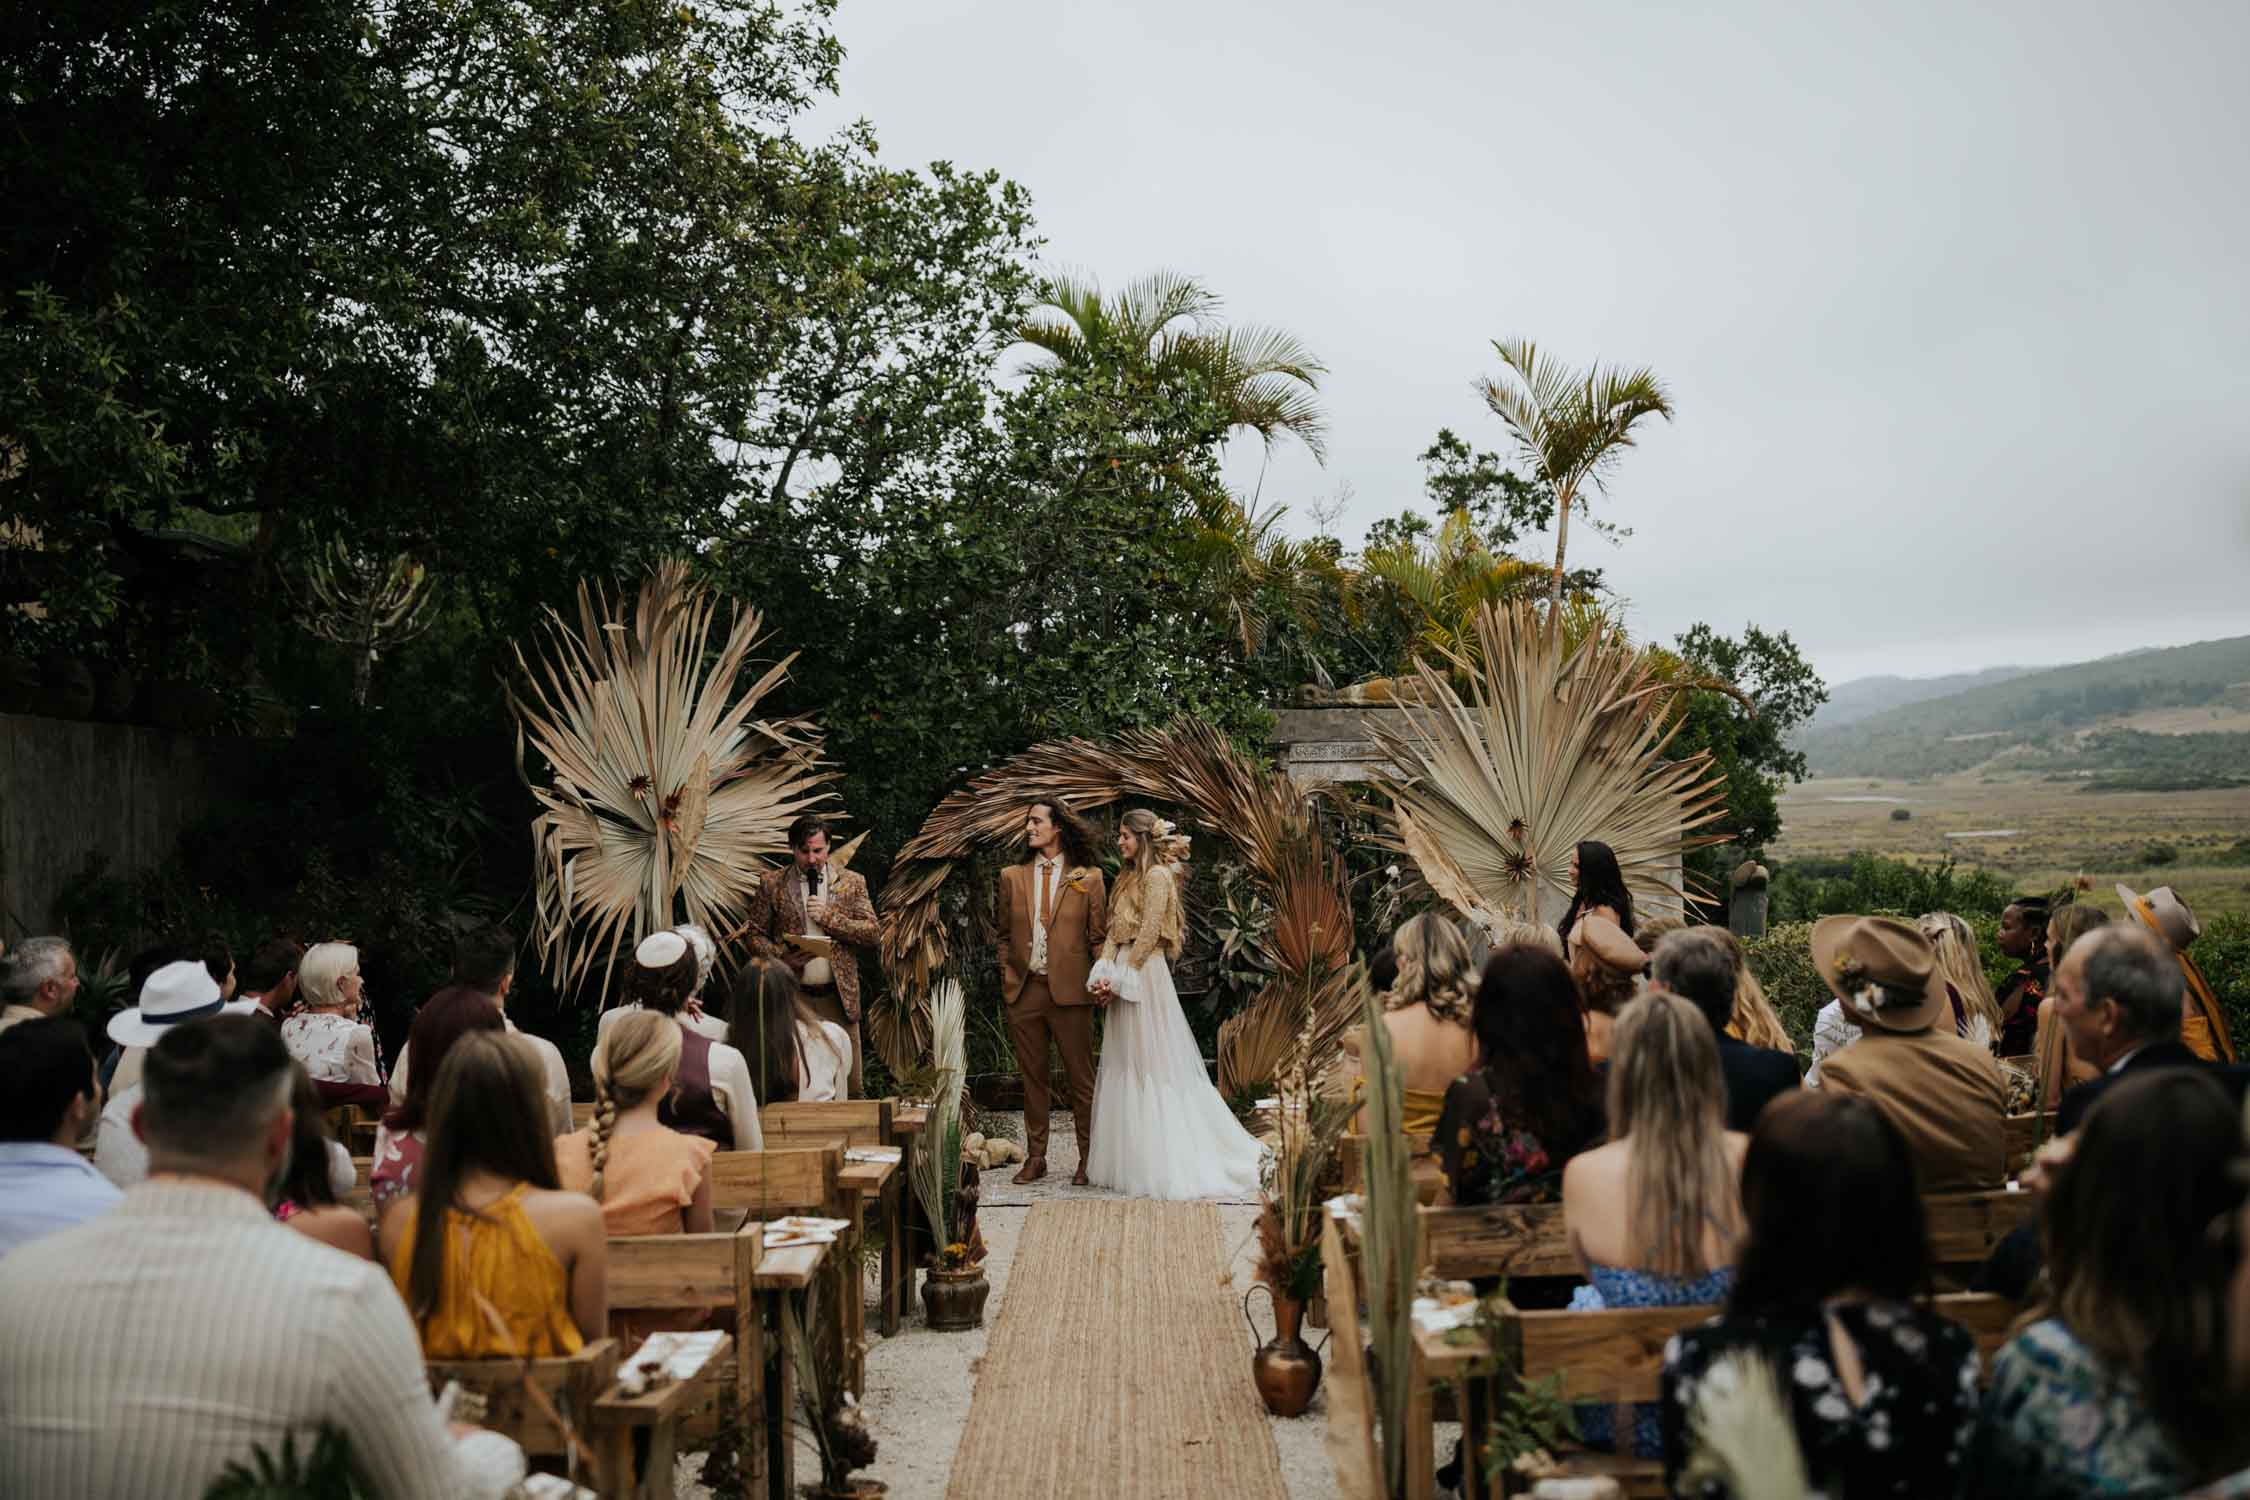 Wedding ceremony inspiration for outdoor boho gypsy wedding ceremony